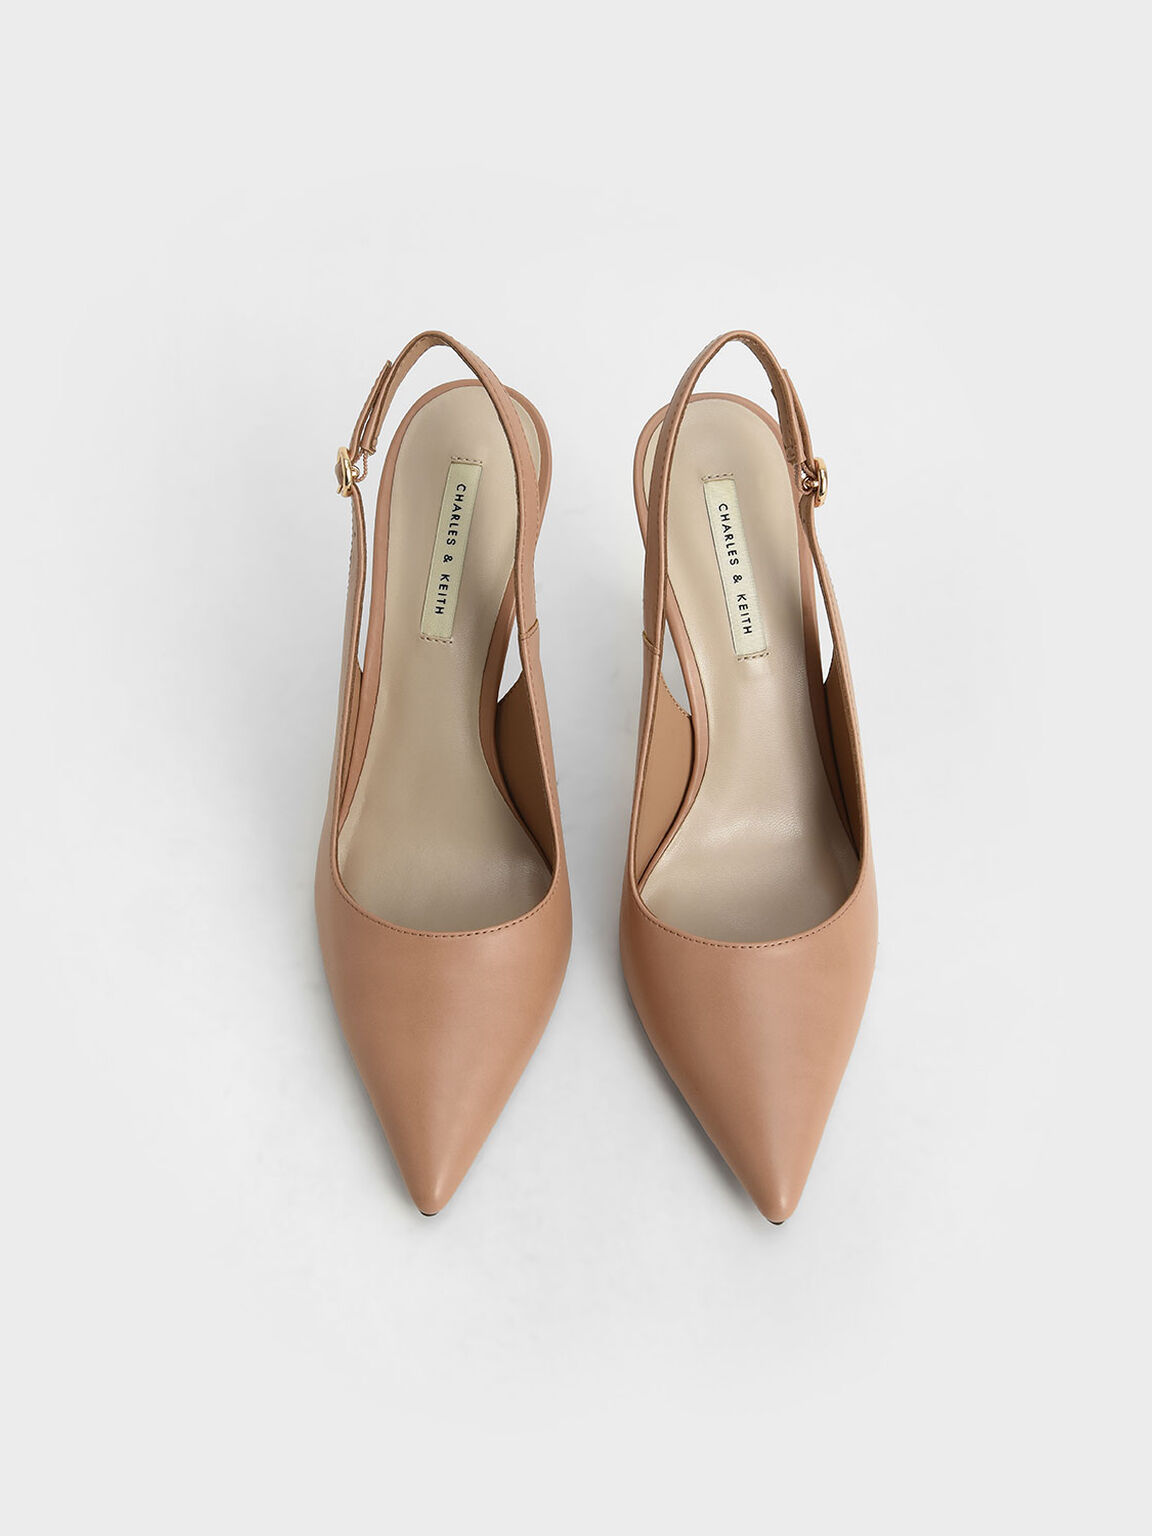 Slingback Stiletto Pumps, Nude, hi-res